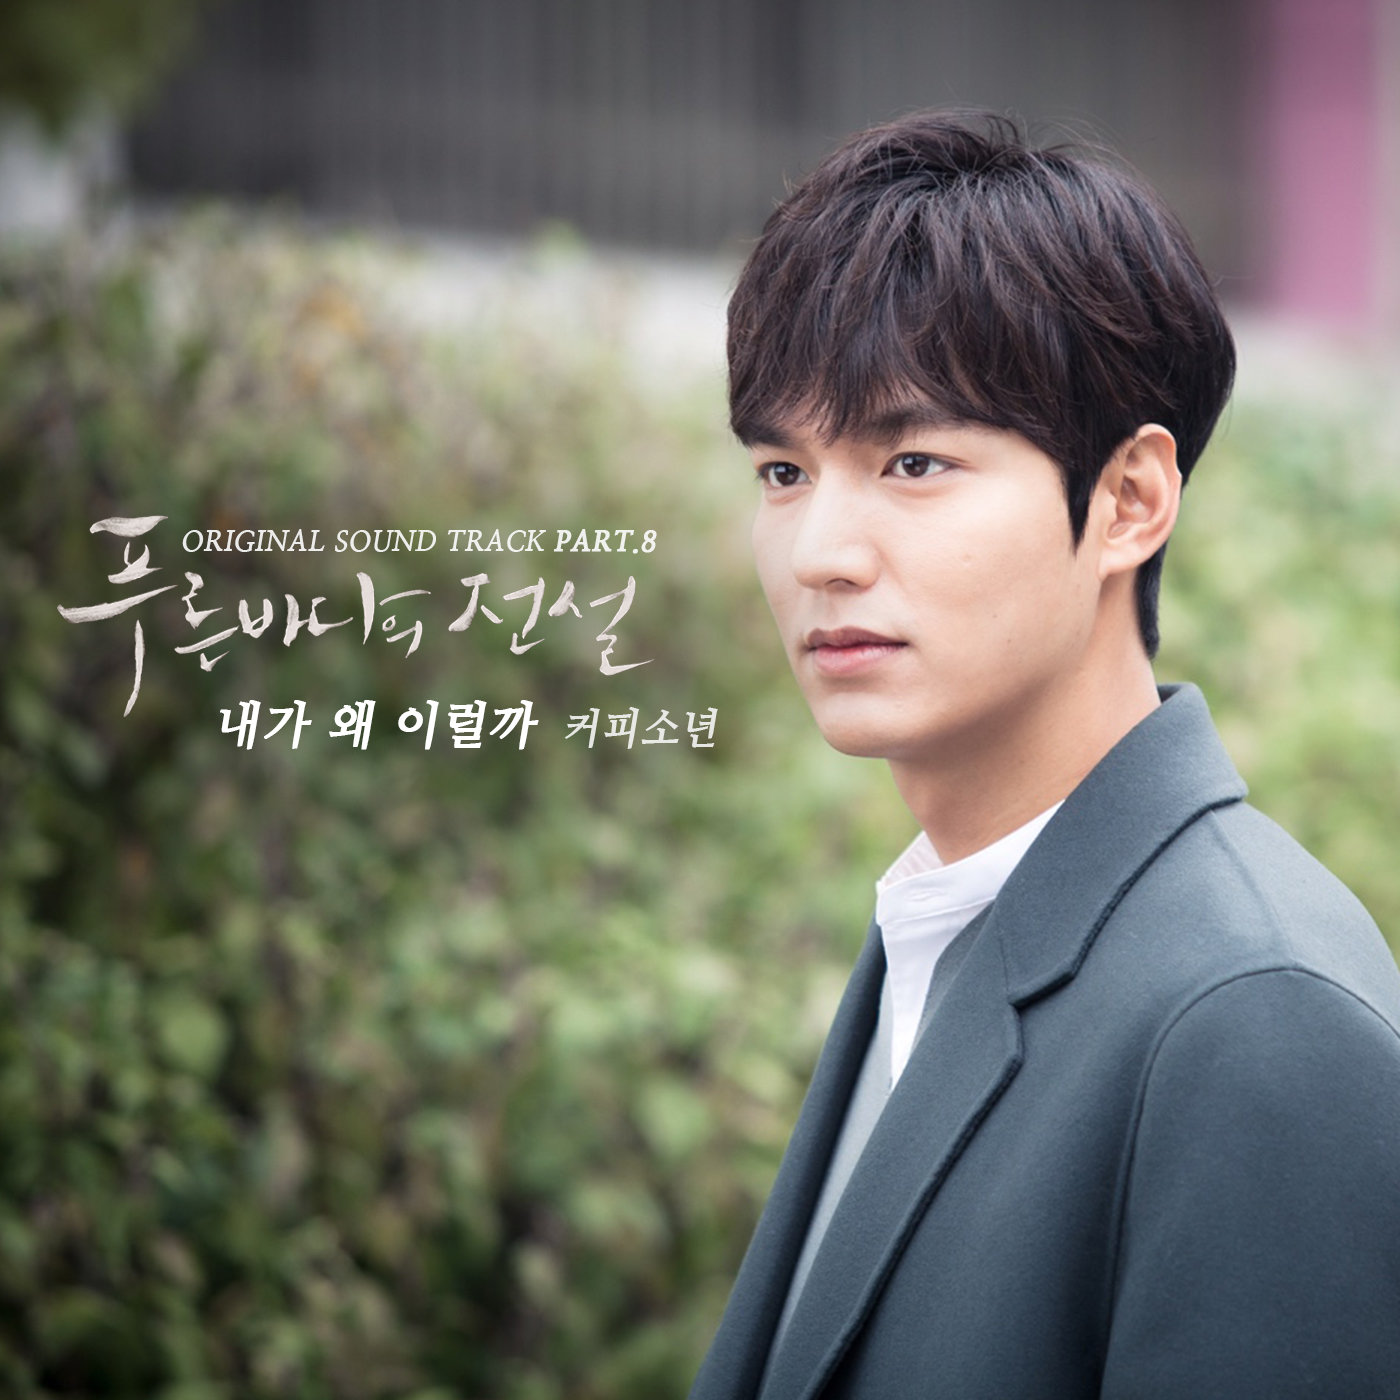 """Citaten Zoon The Legend Of The Blue Sea : 푸른 л° л‹¤мќ м """"м""""¤ the legend of blue sea original"""